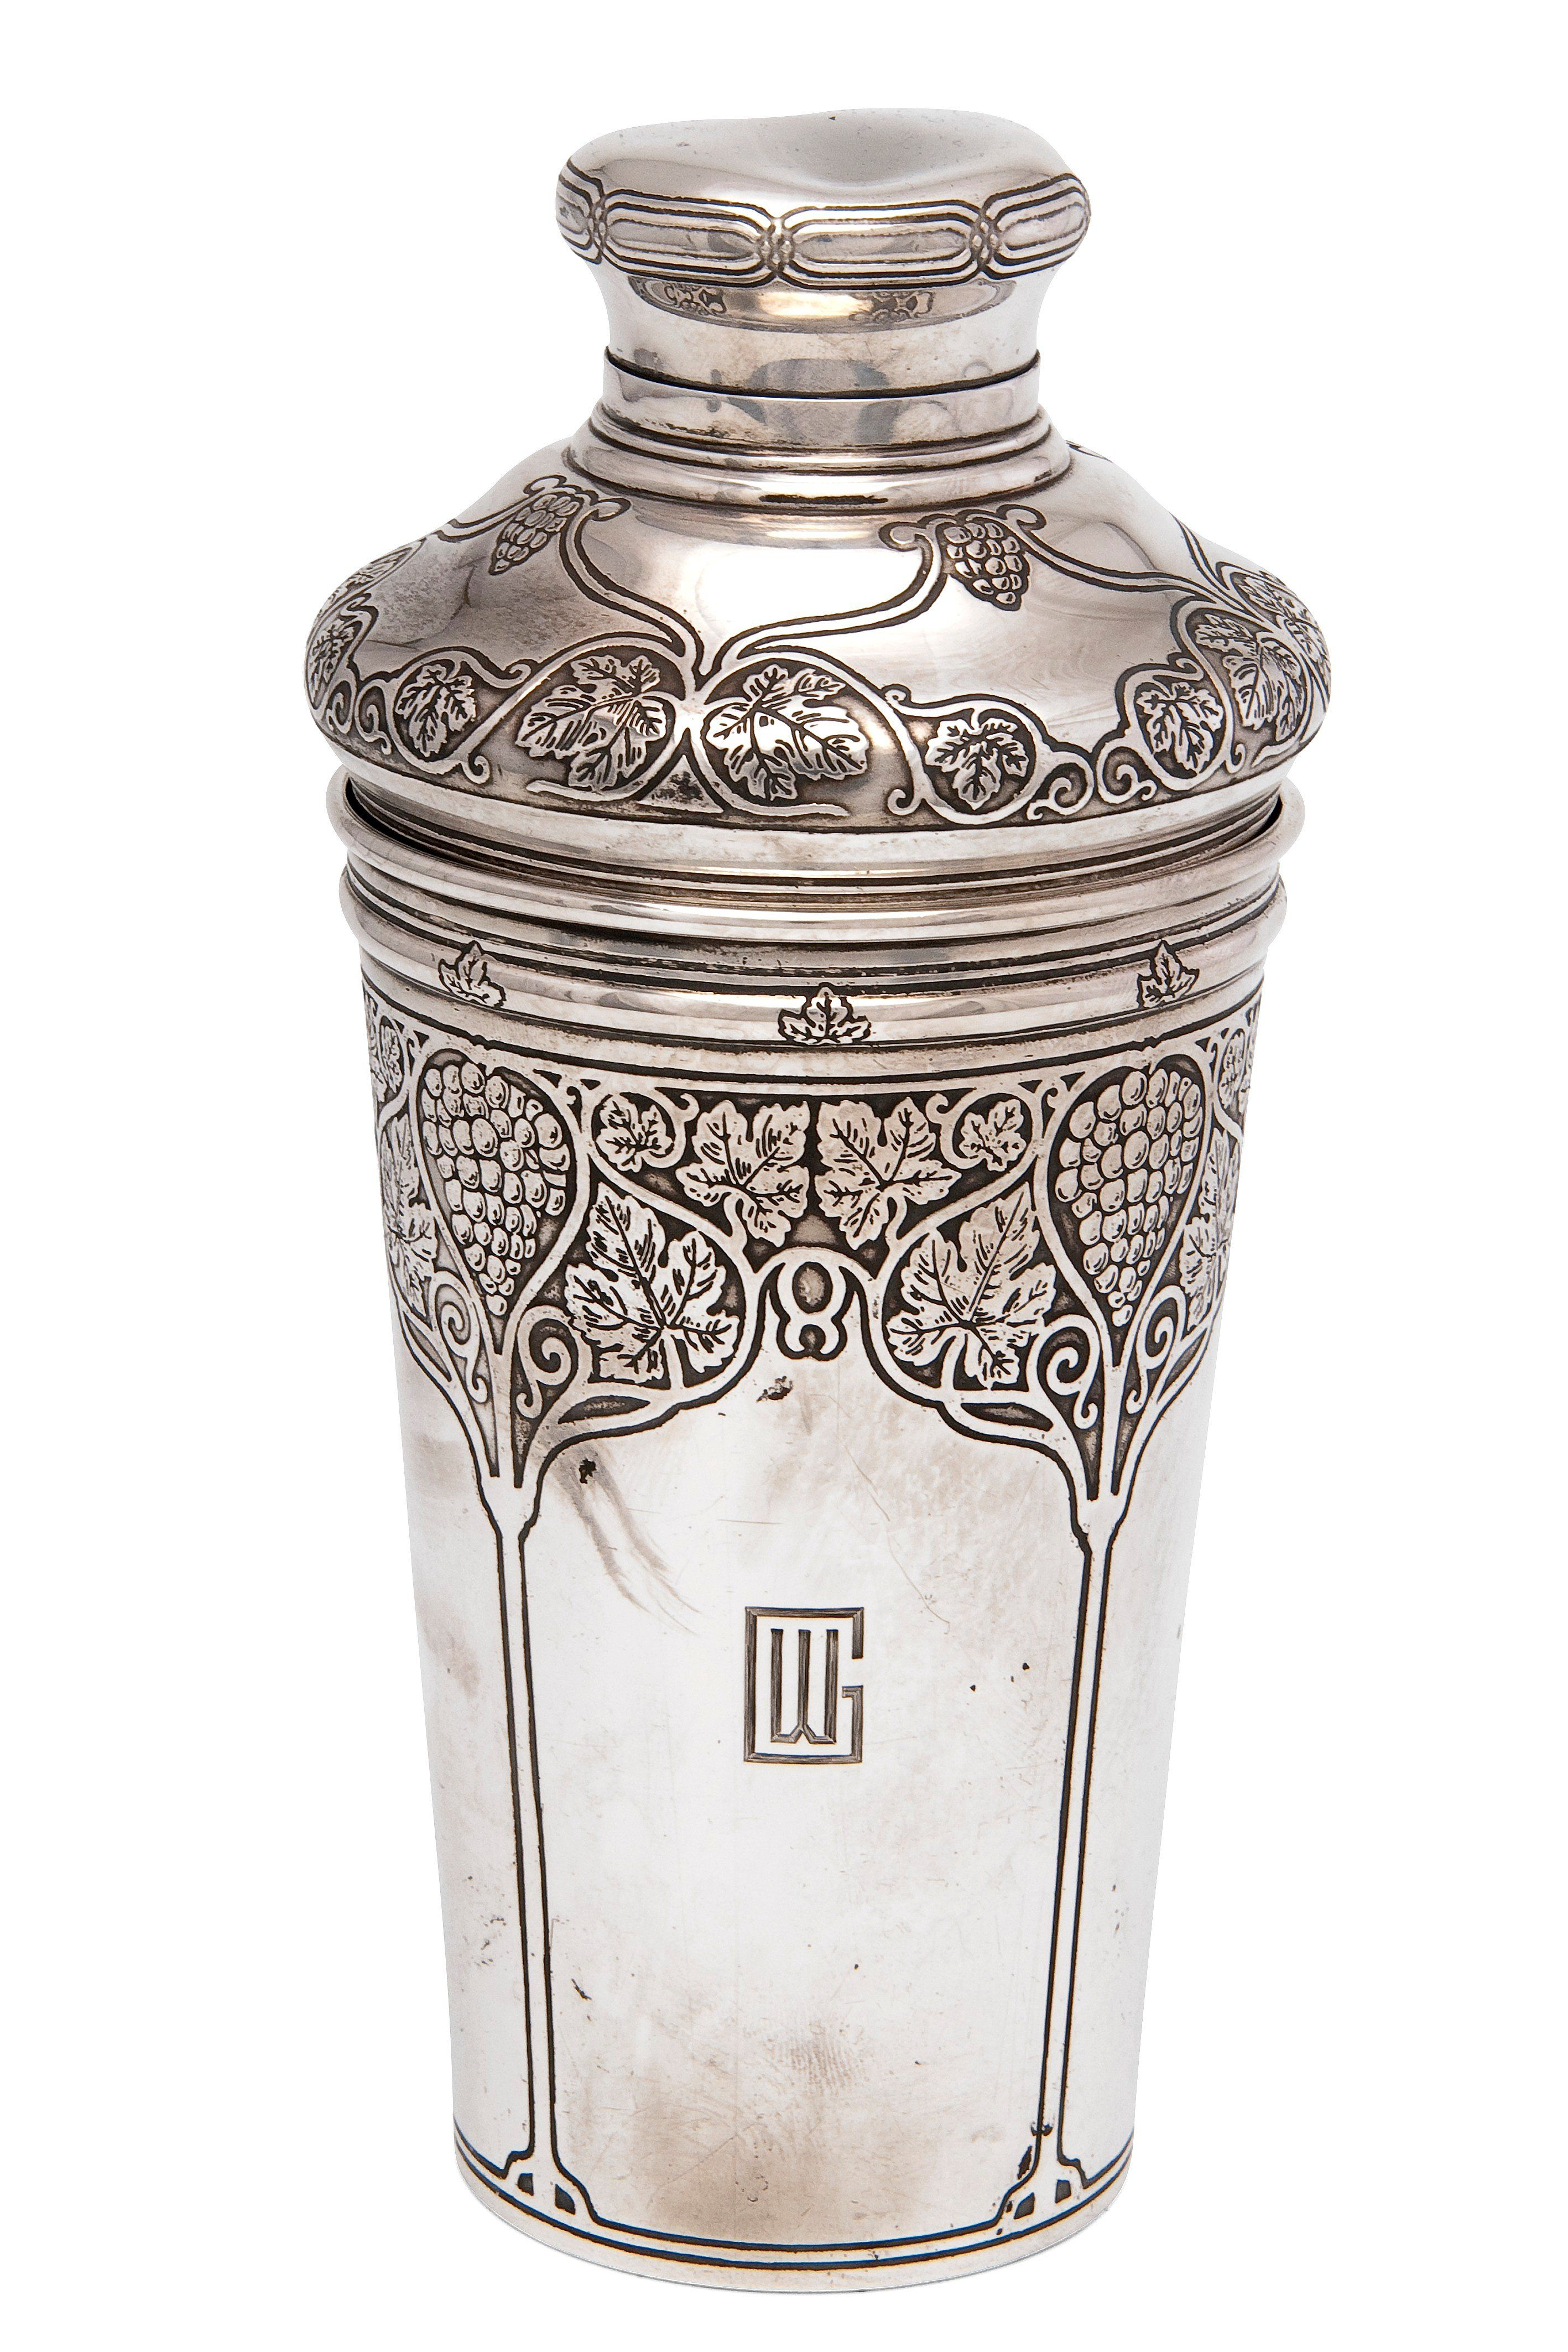 Sterling silver cocktail shaker,Tiffany & Co   Art Deco ...